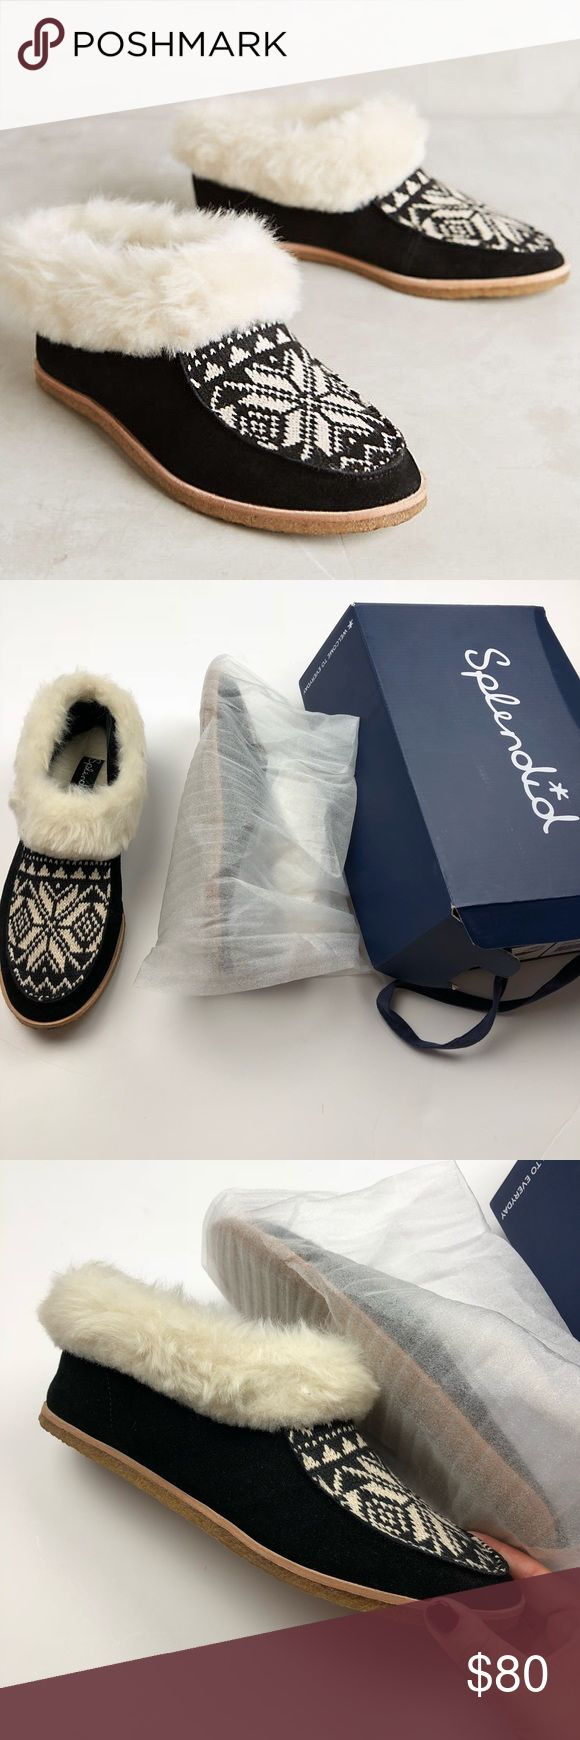 NIB Splendid Faux Fur Booties So cute and perfect for winter! Brand new in box. Size 9. Black suede with faux fur lining. No trades!! 010201790def Splendid Shoes Ankle Boots & Booties